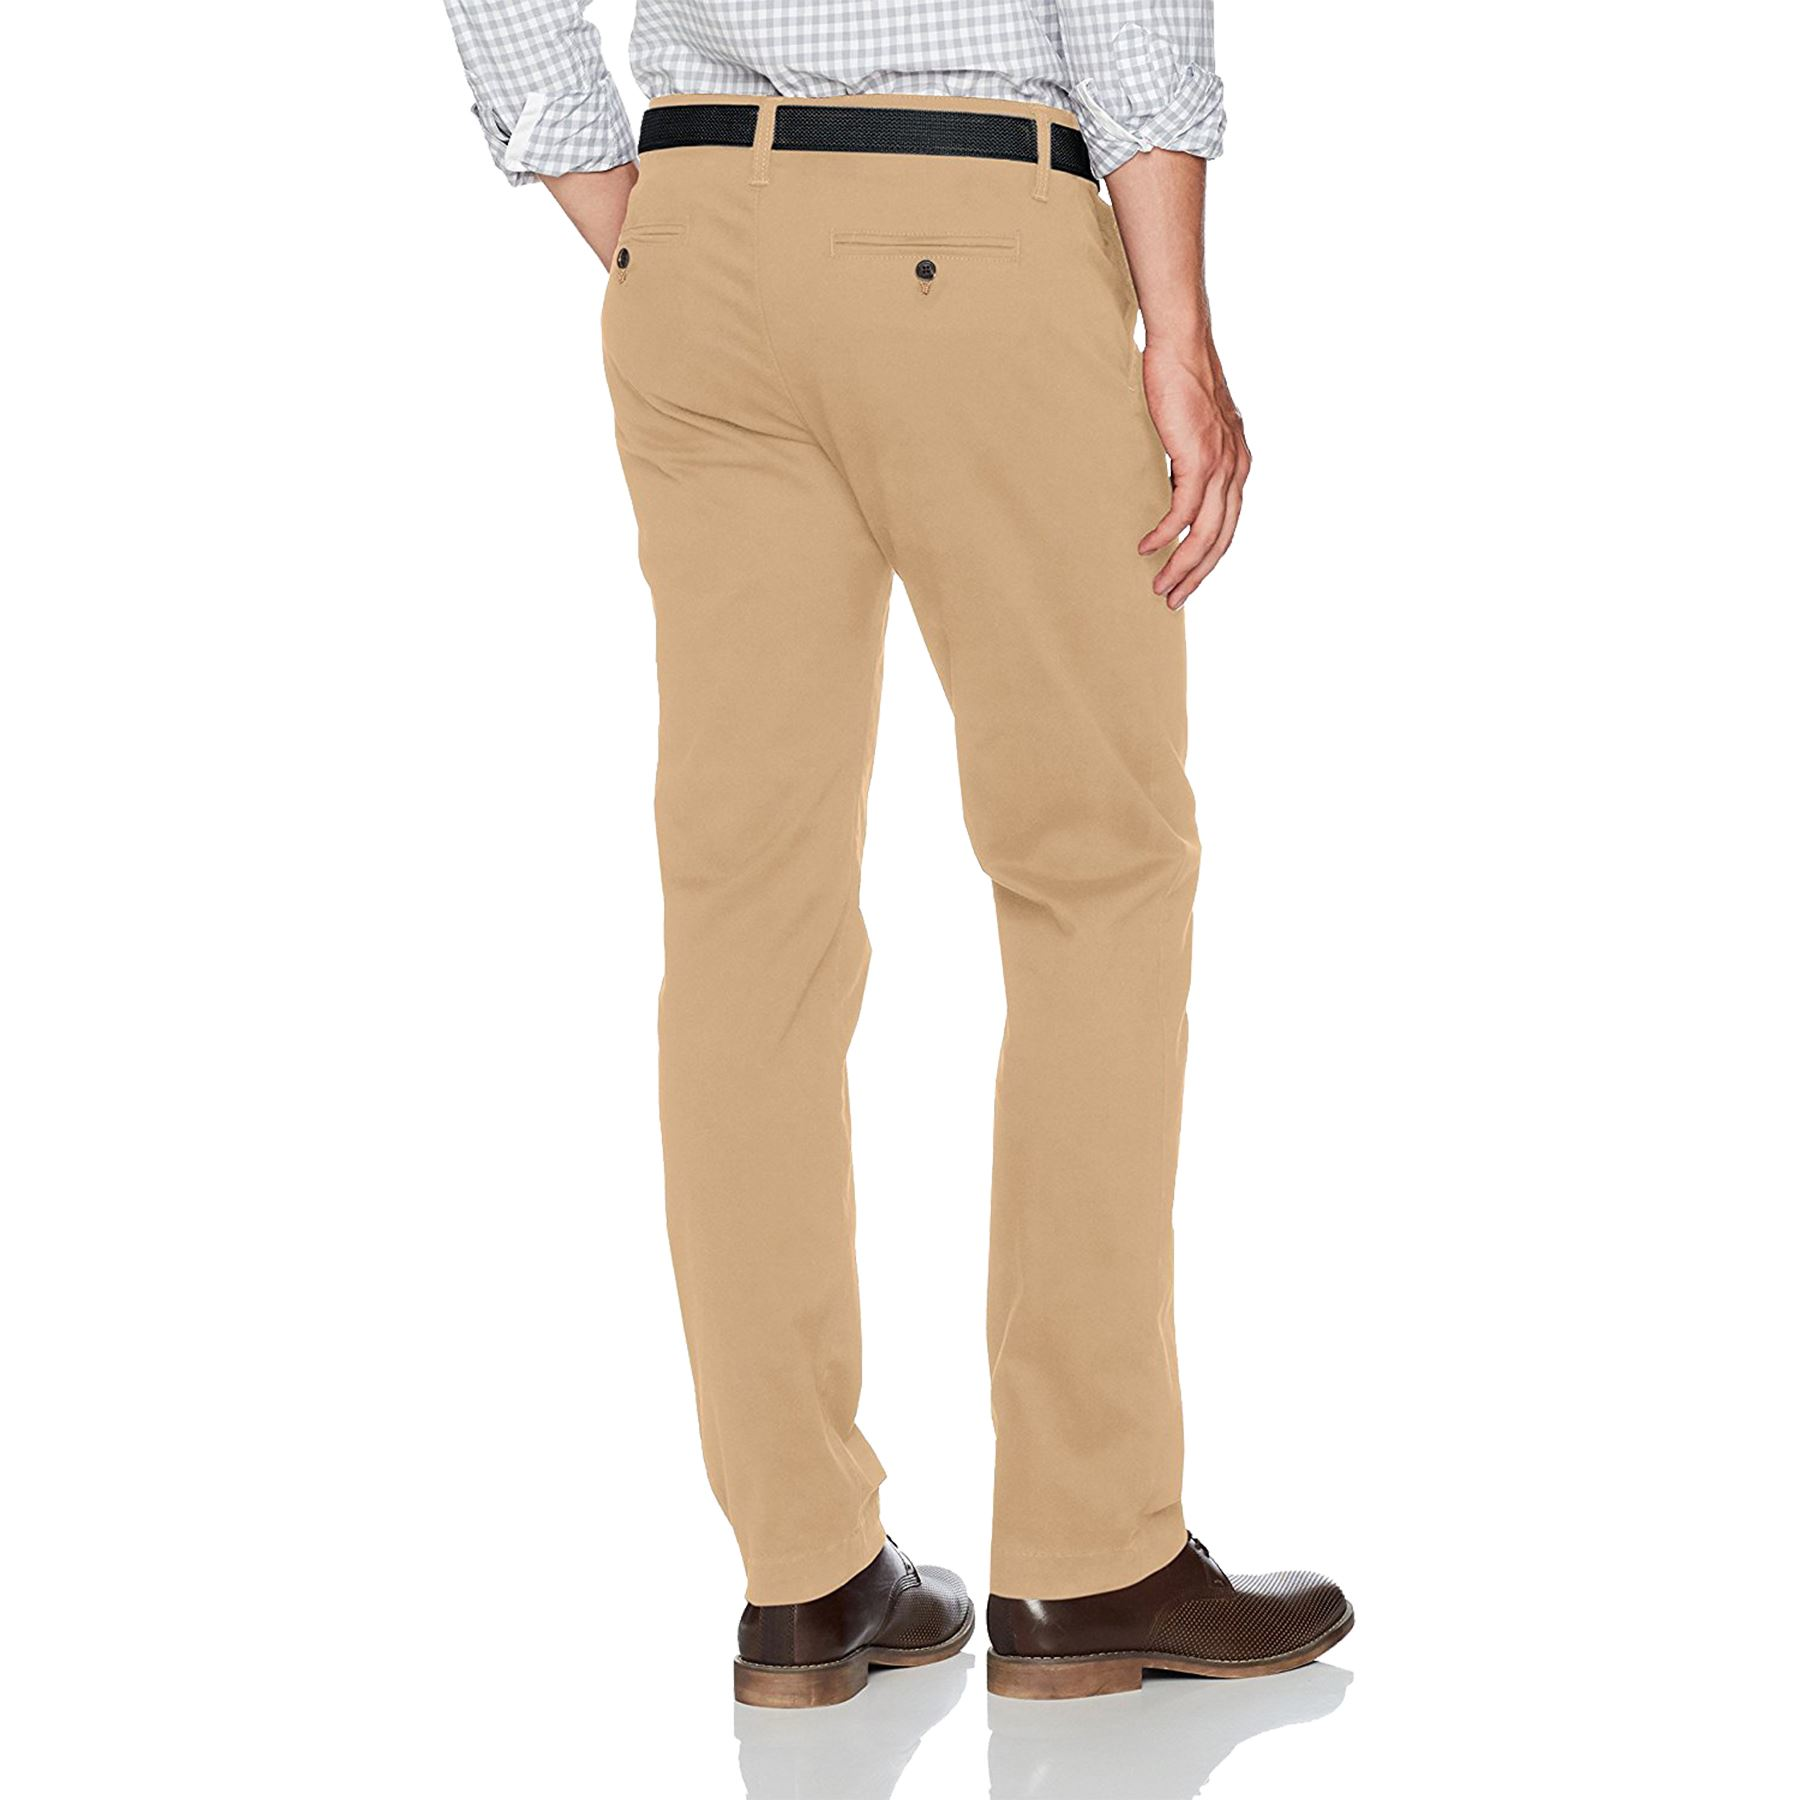 New-Mens-Ex-Store-Chino-Trousers-Regular-Fit-Straight-Cotton-Casual-Work-Pants thumbnail 3